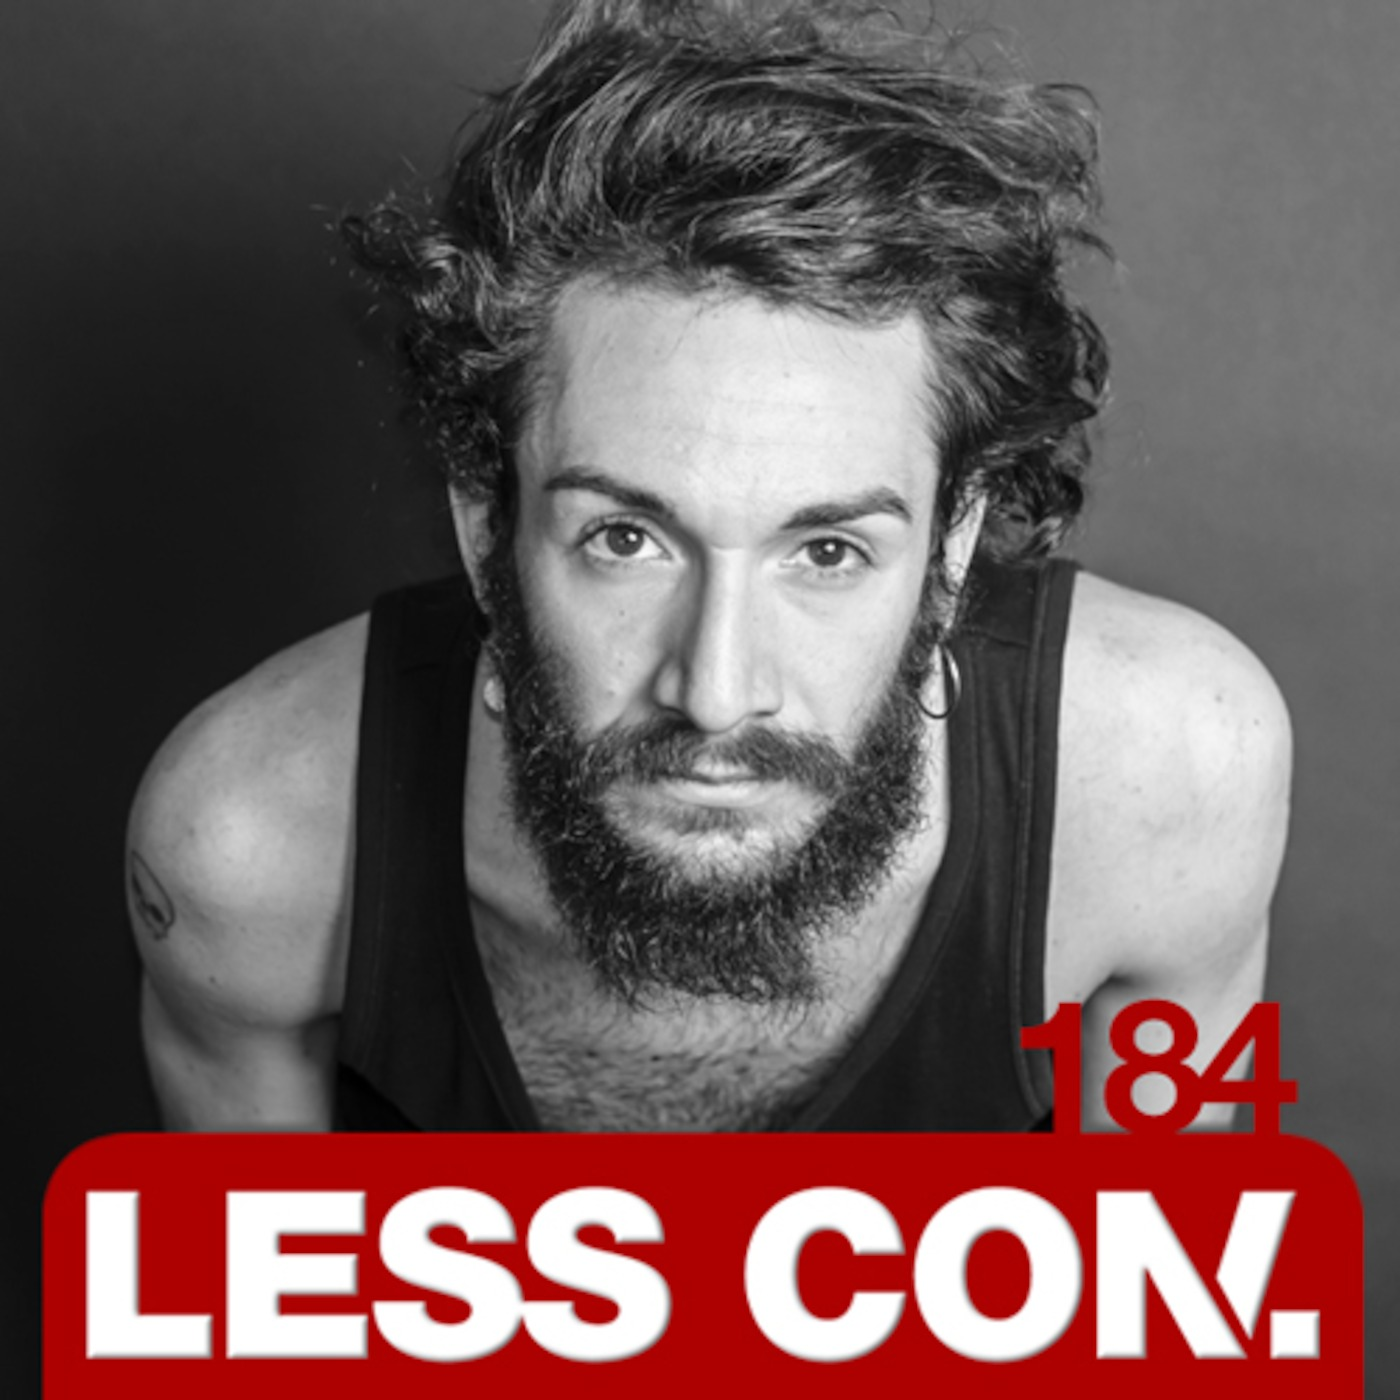 13 Best Things I love images | Beard no mustache, Marcus